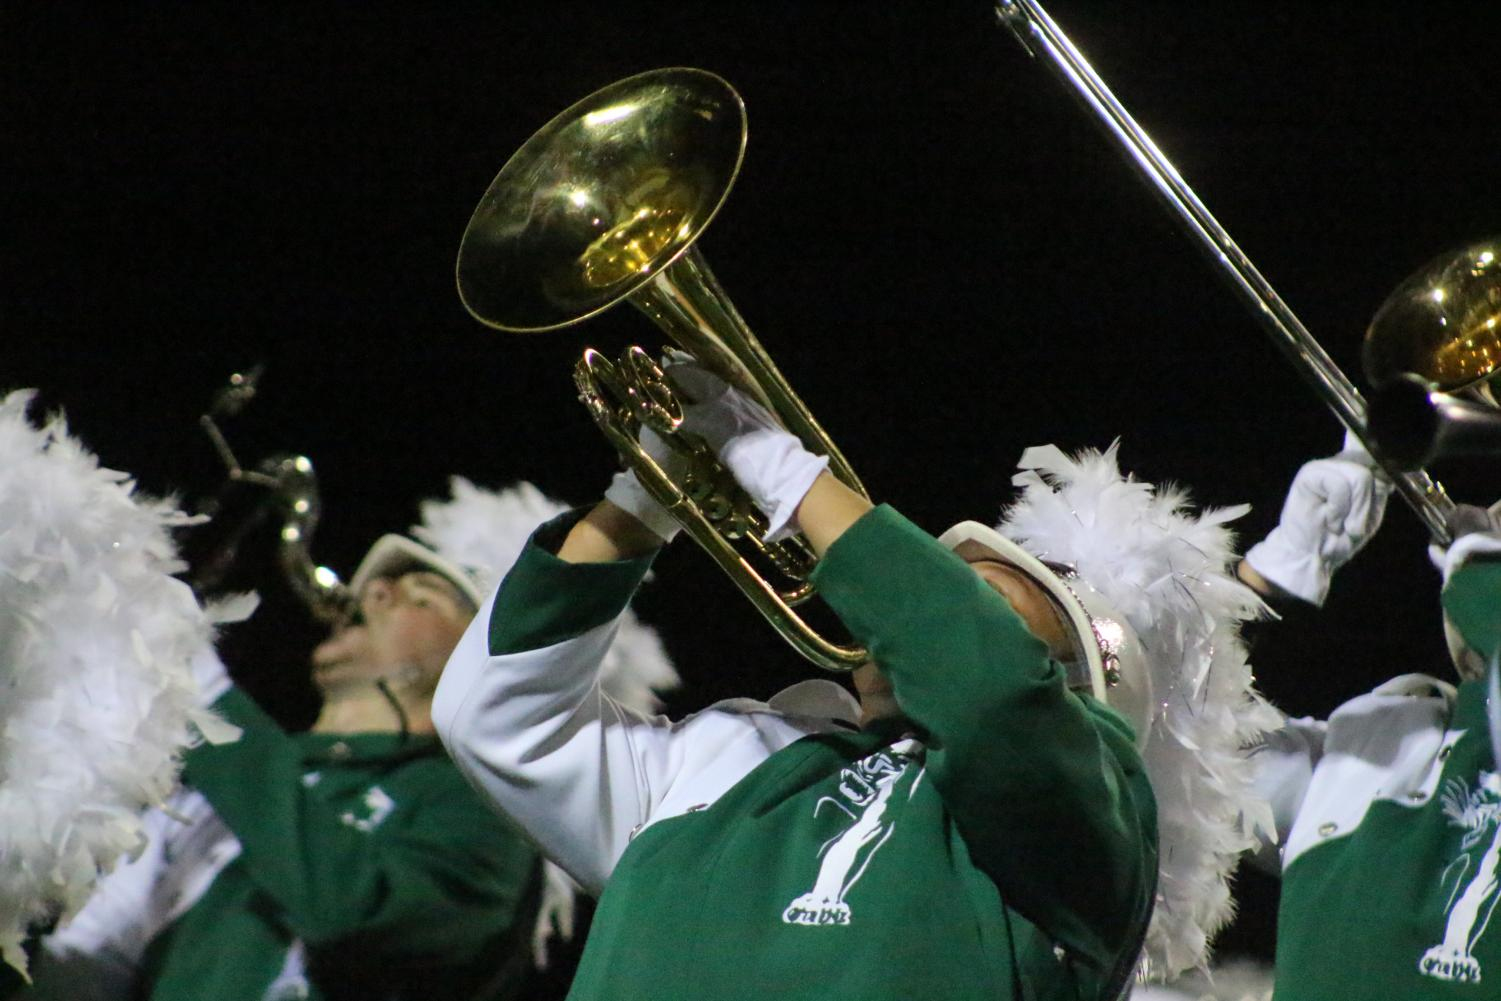 A+trumpet+player+turns+his+horn+towards+the+air+during+the+marching+band+performance%2C+%22About+Love%22+during+halftime